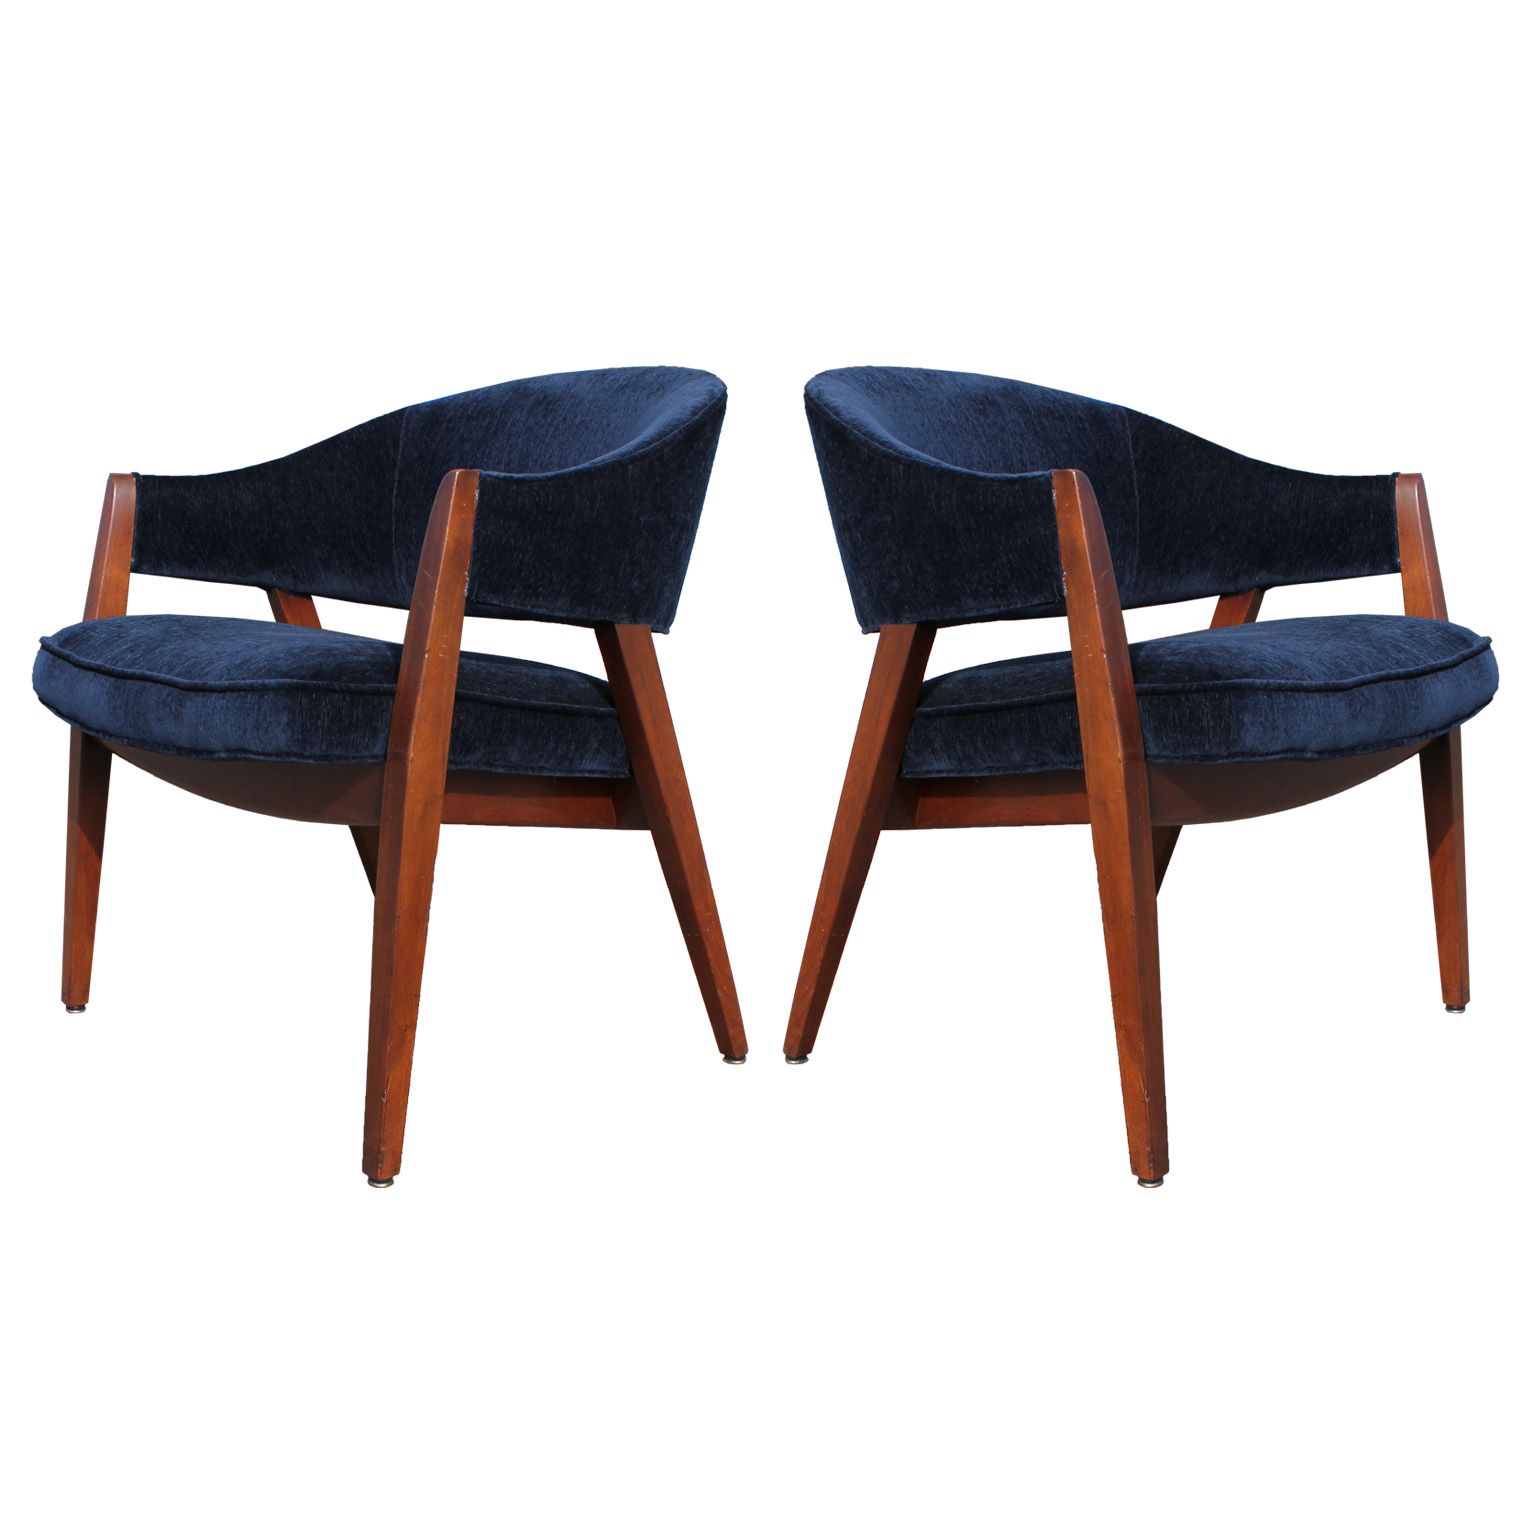 Pair of Blue Velvet Covered Side Chairs : blue chair pair5 from www.reevesantiqueshouston.com size 1536 x 1536 jpeg 229kB